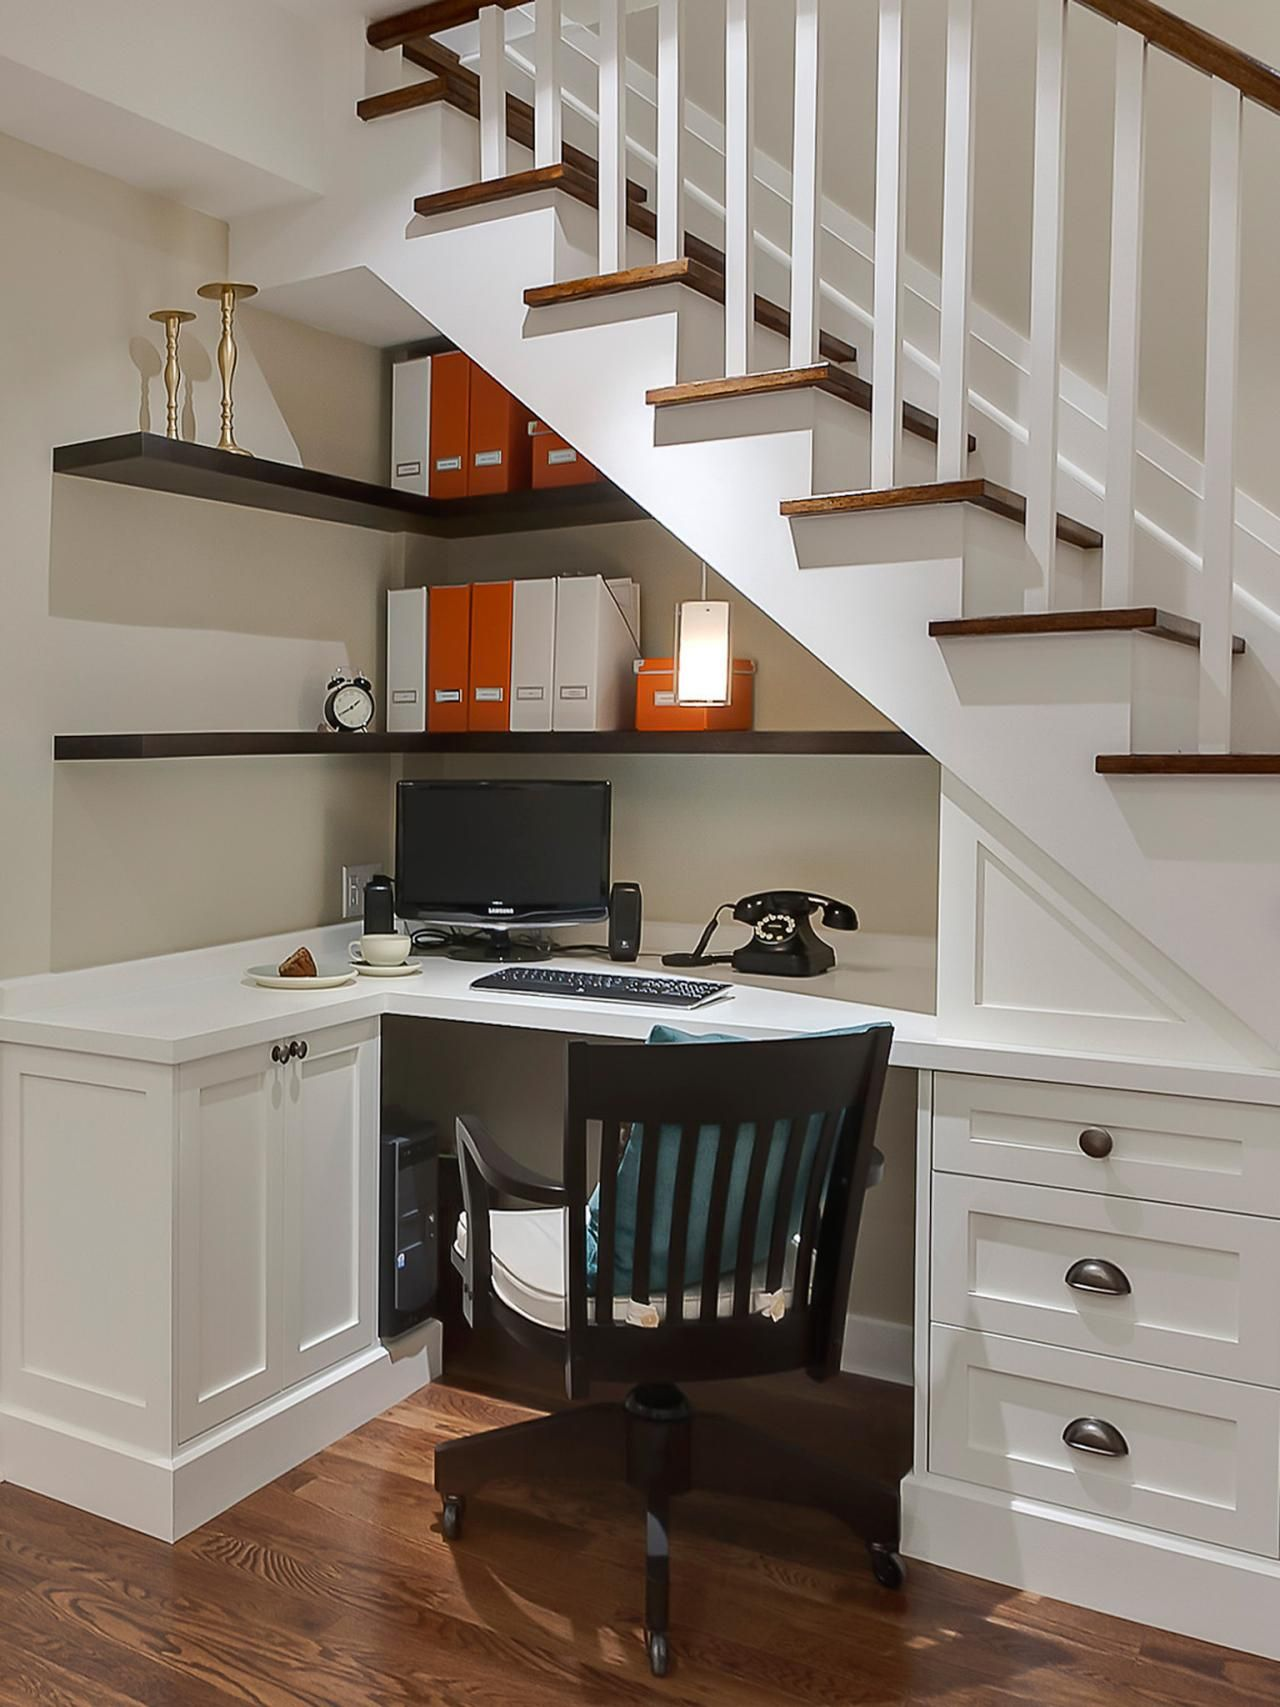 11 Pictures Of Organized Home Offices | Home Remodeling   Ideas For  Basements, Home Theaters U0026 More | HGTV